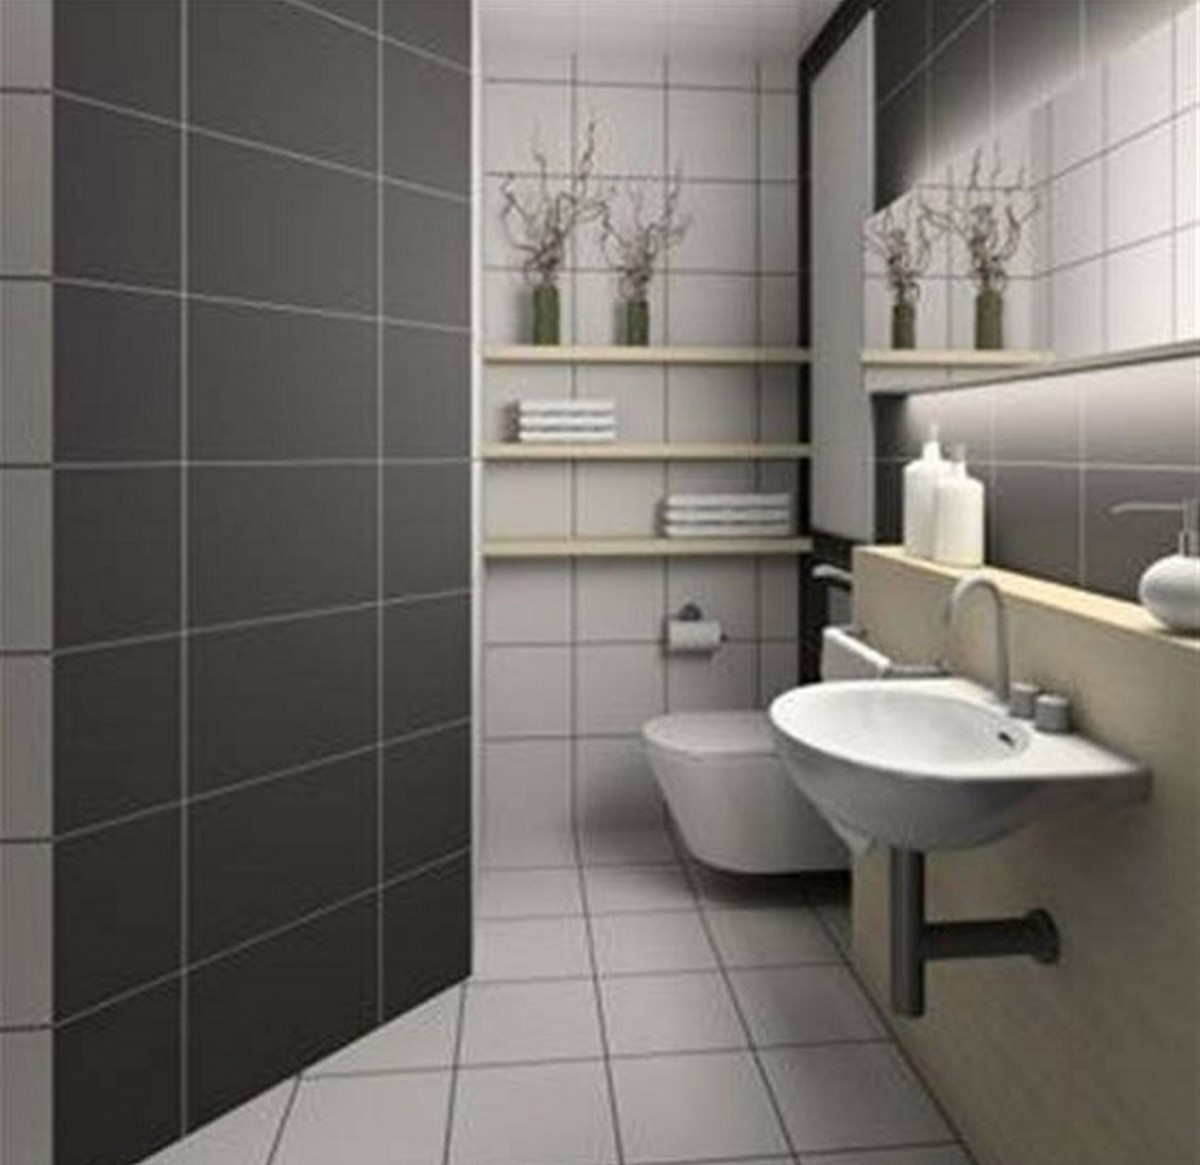 25 grey wall tiles for bathroom ideas and pictures 1 color ideas for bathrooms grey color bathroom 2c3b317e4431ed300bcc35a1d491b73d 6a00d8341dabcb53ef017d40d60d7b970c aloadofball Gallery